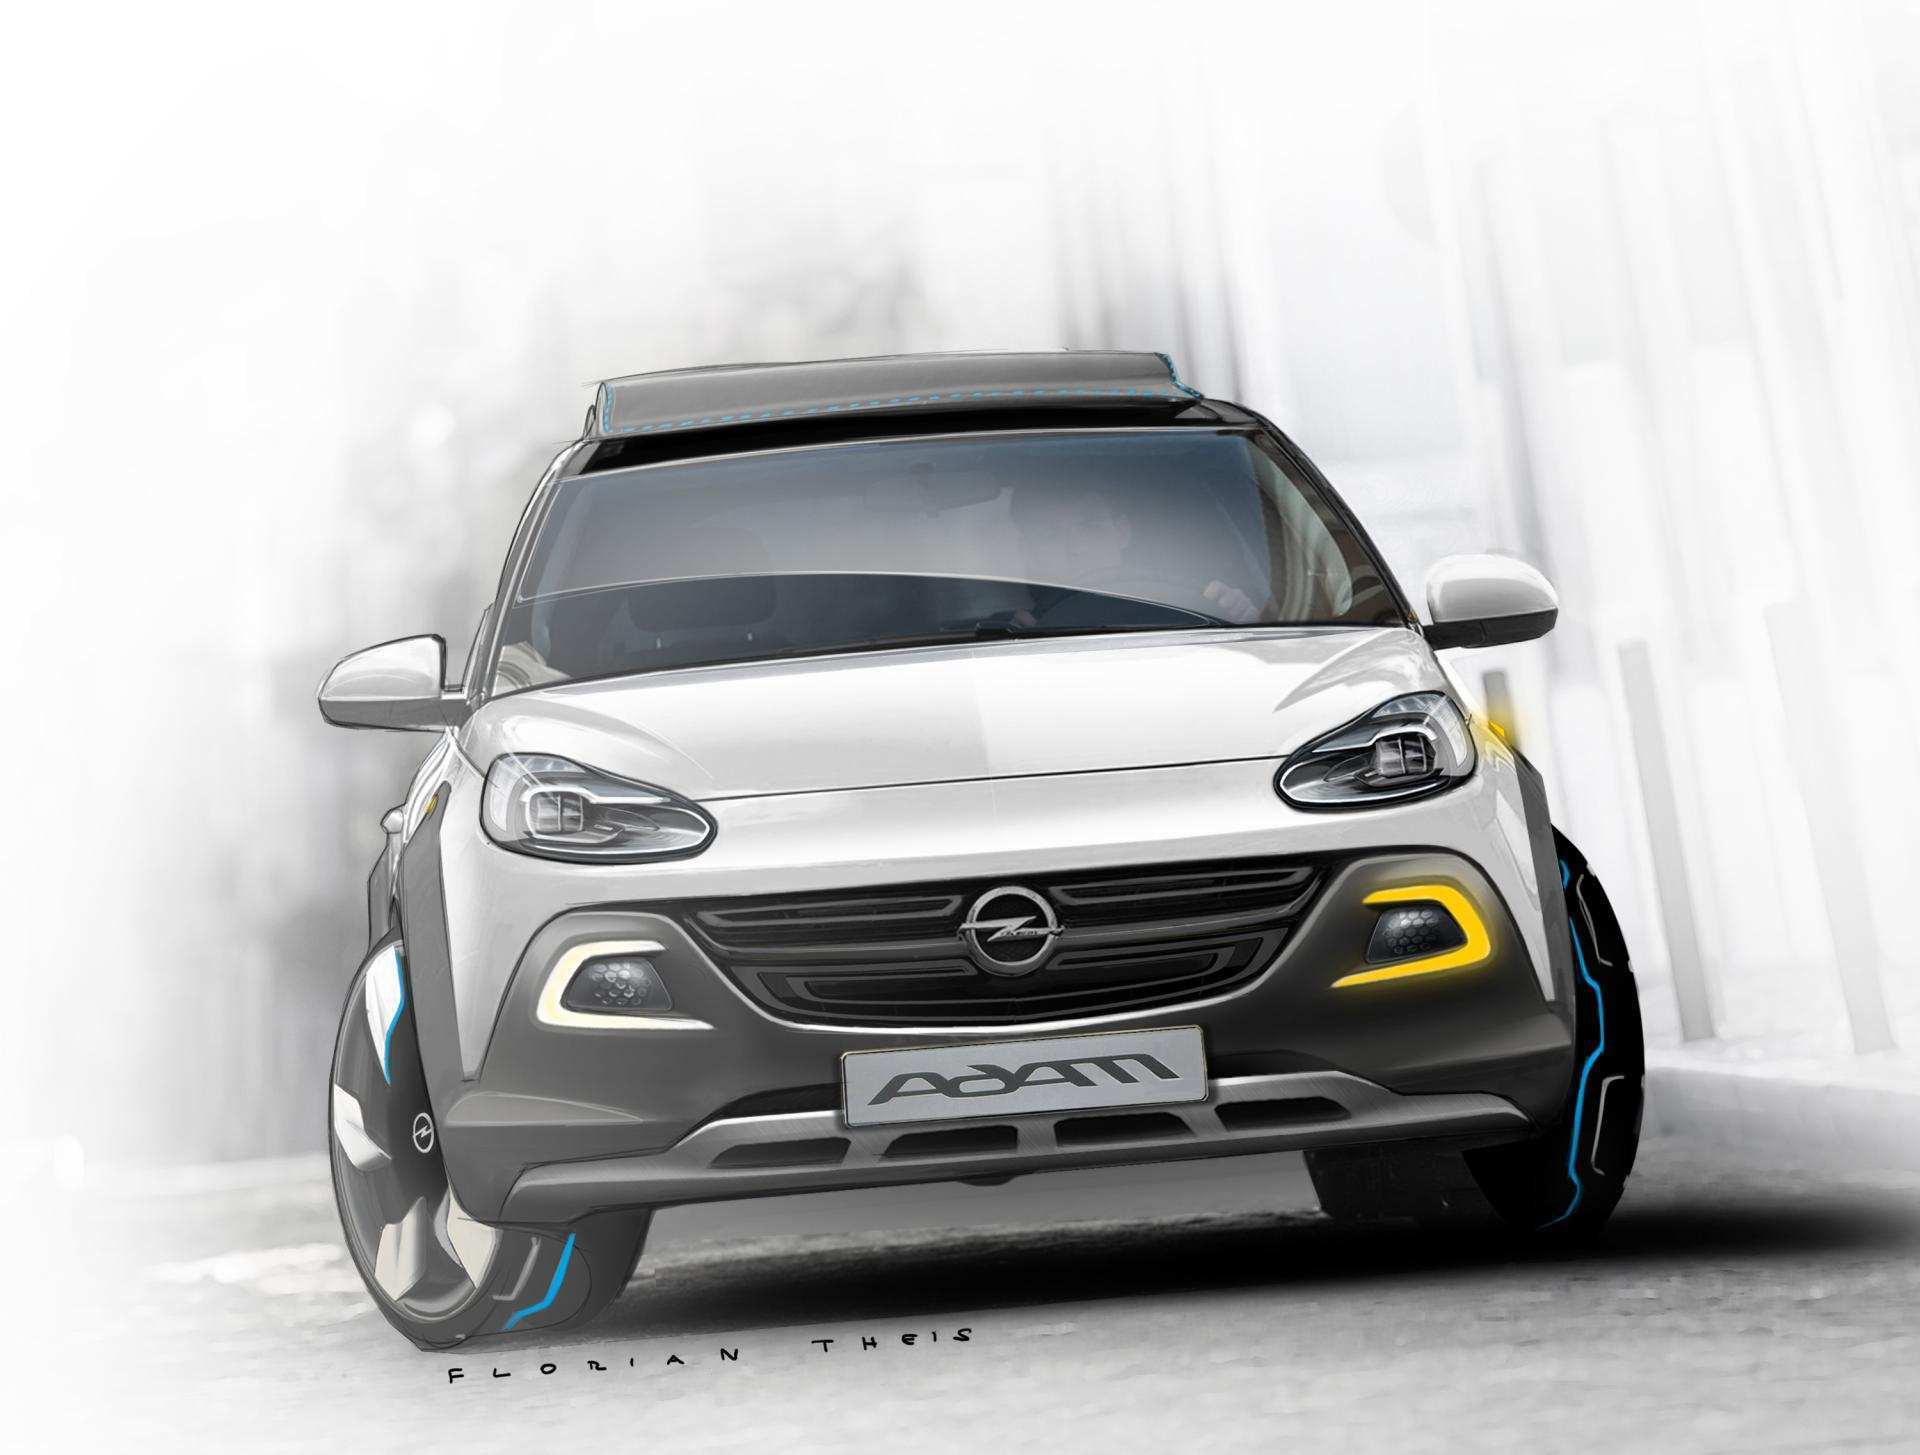 97 The 2020 Opel Adam Rocks Picture with 2020 Opel Adam Rocks